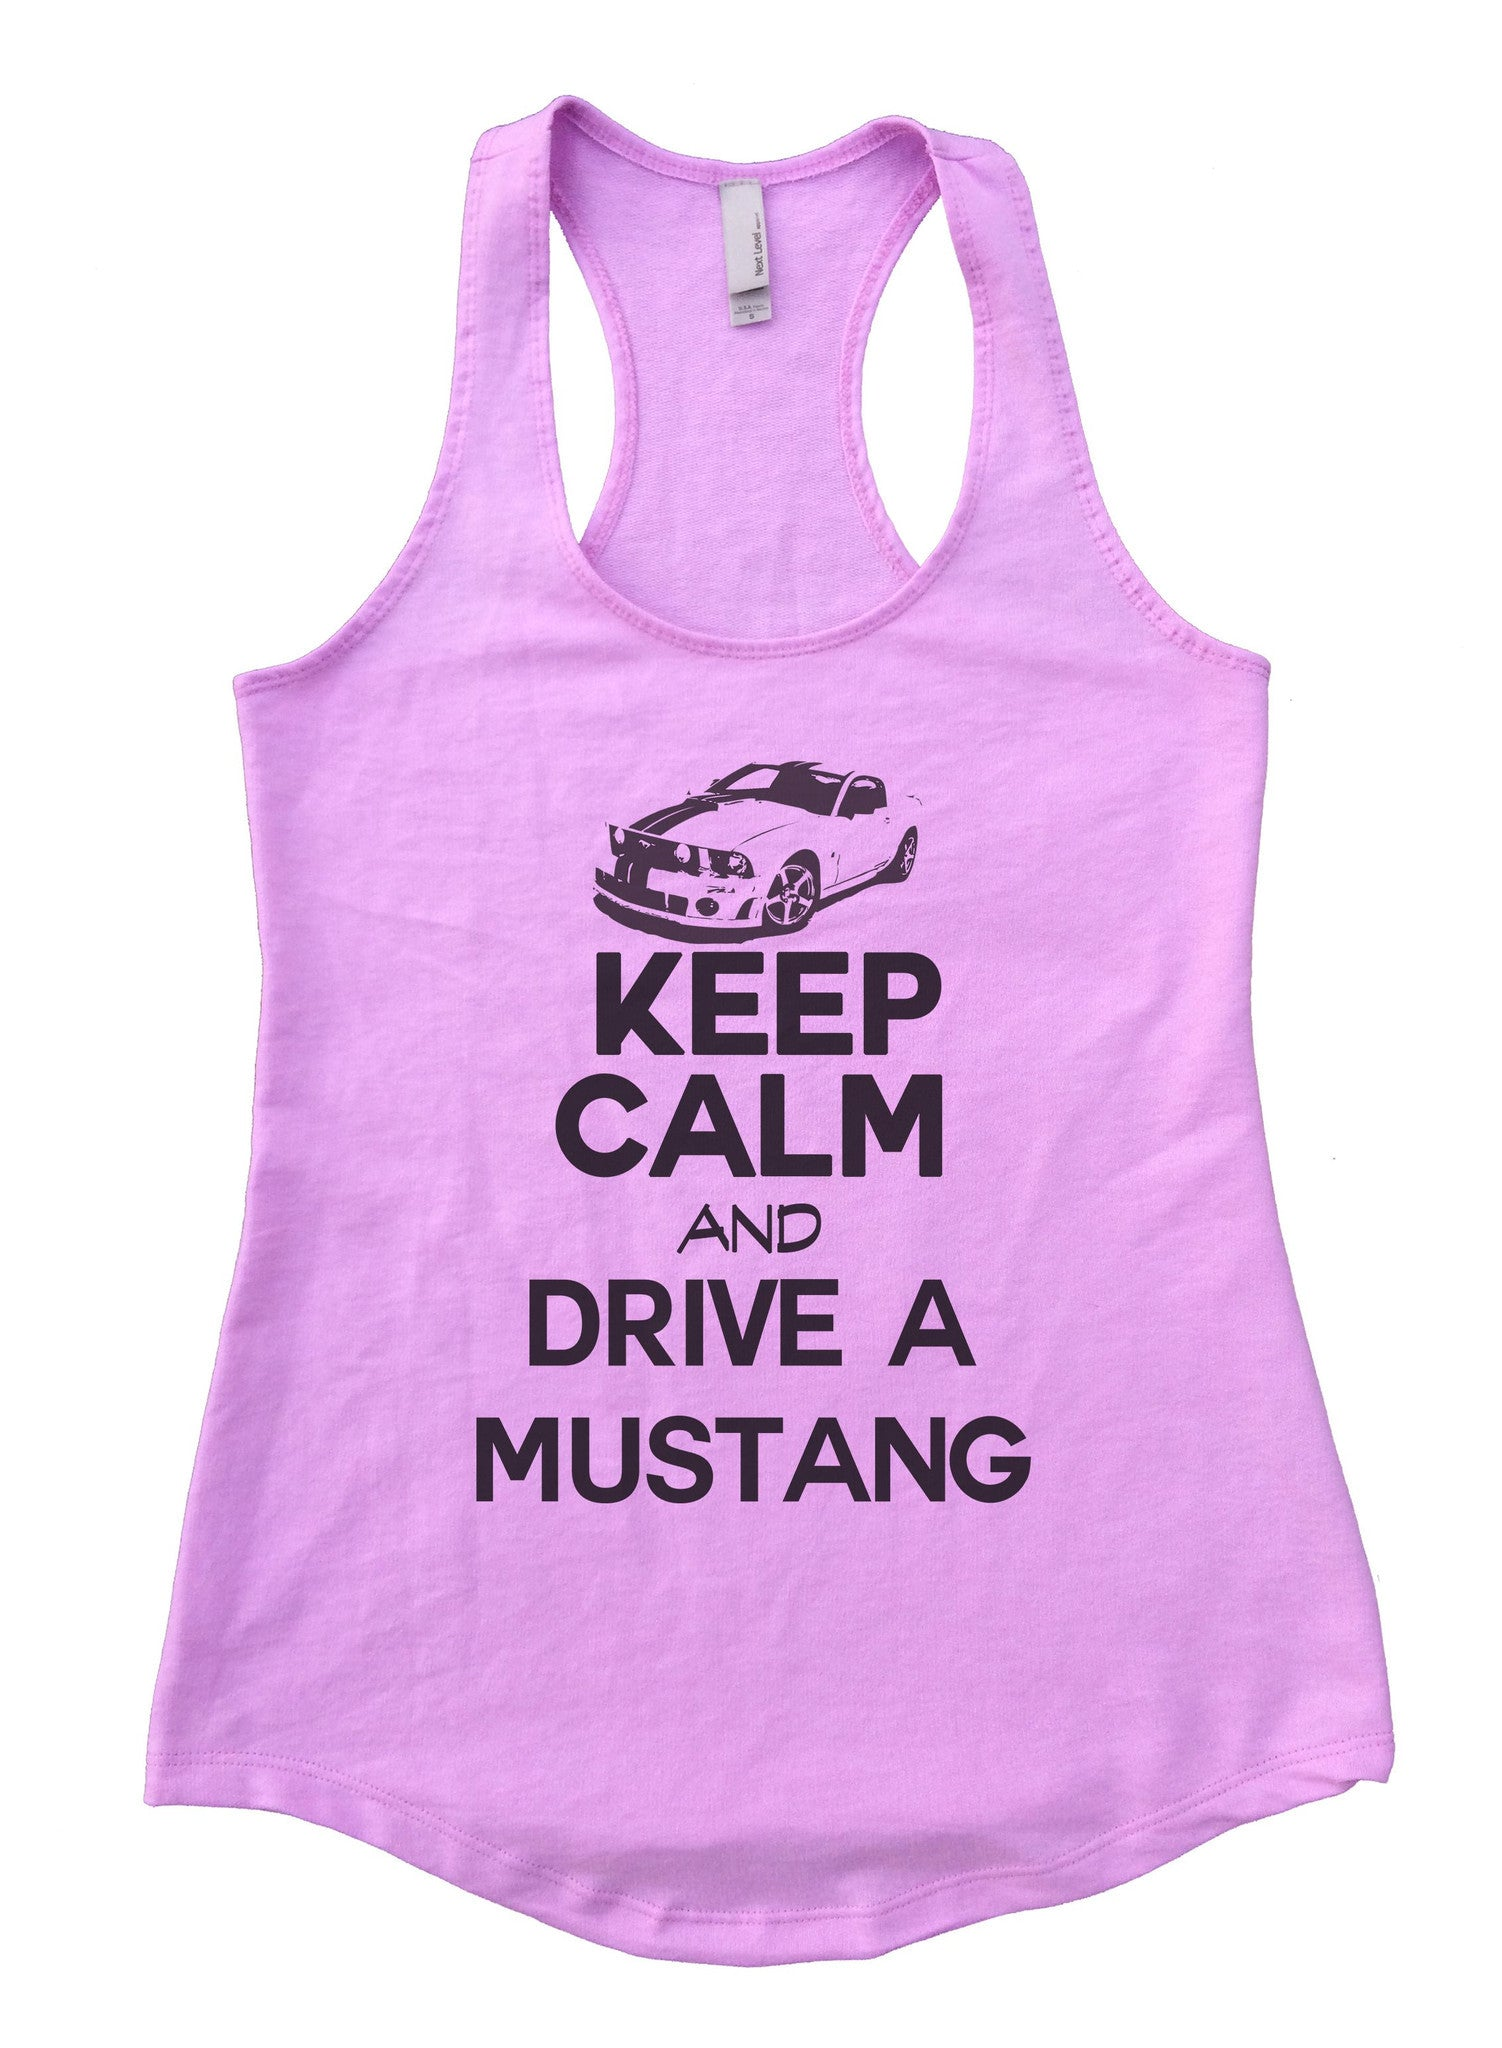 Keep Calm And Drive A Mustang Womens Workout Tank Top 2119 - Funny Shirts Tank Tops Burnouts and Triblends  - 5